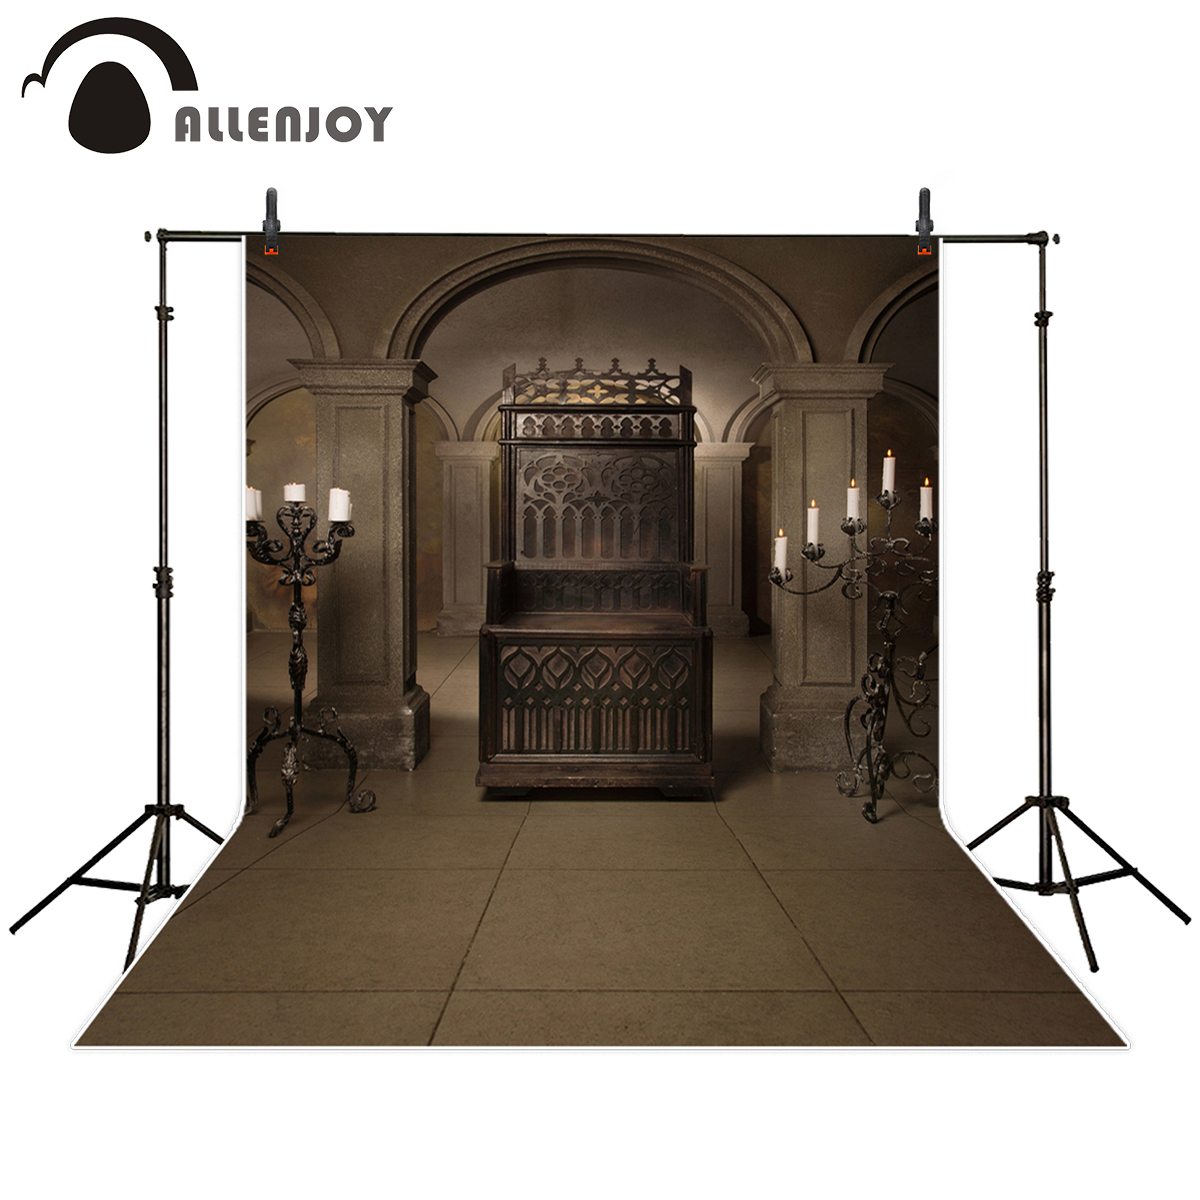 Allenjoy photography backdrop Vintage royal throne medieval castle background photo studio new design camera fotografica allenjoy photography backdrop library books student child newborn photo studio photocall background original design